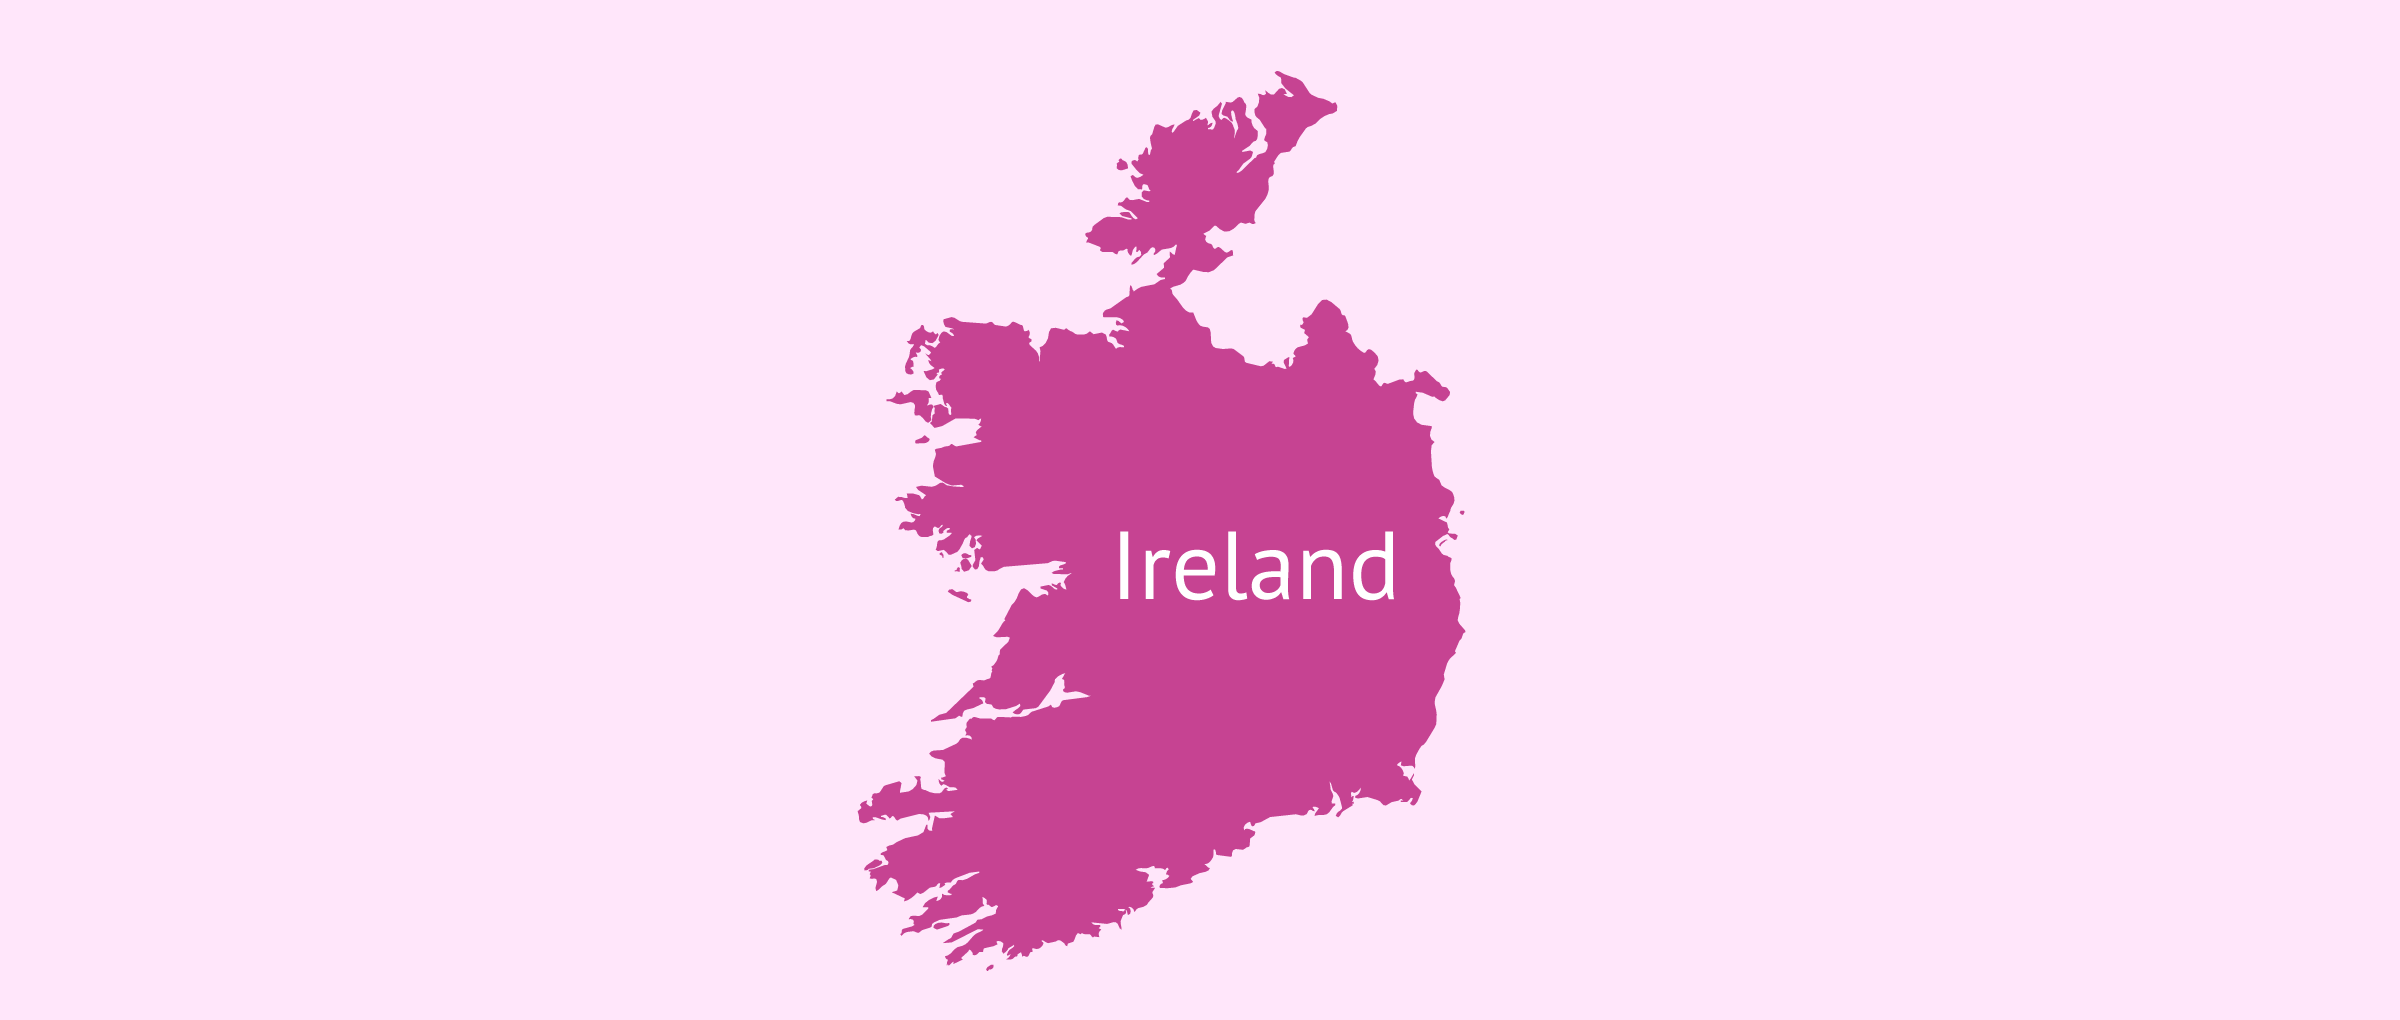 Surrogacy in Ireland and its Legal Limbo